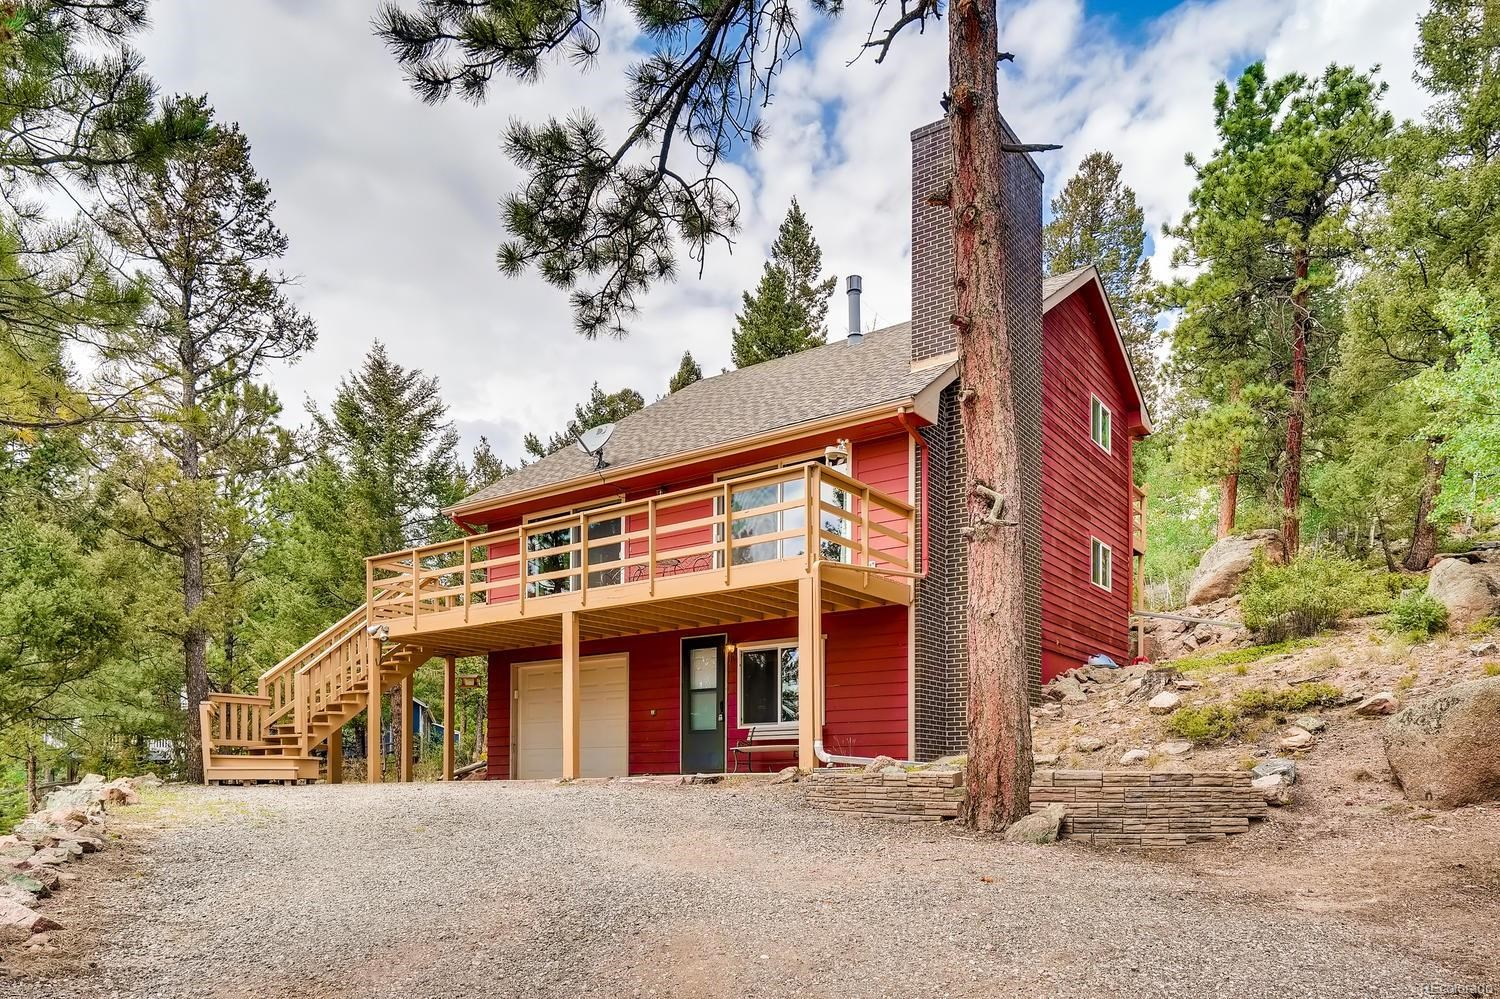 MLS# 8376760 - 19 - 30915 Walter Drive, Conifer, CO 80433